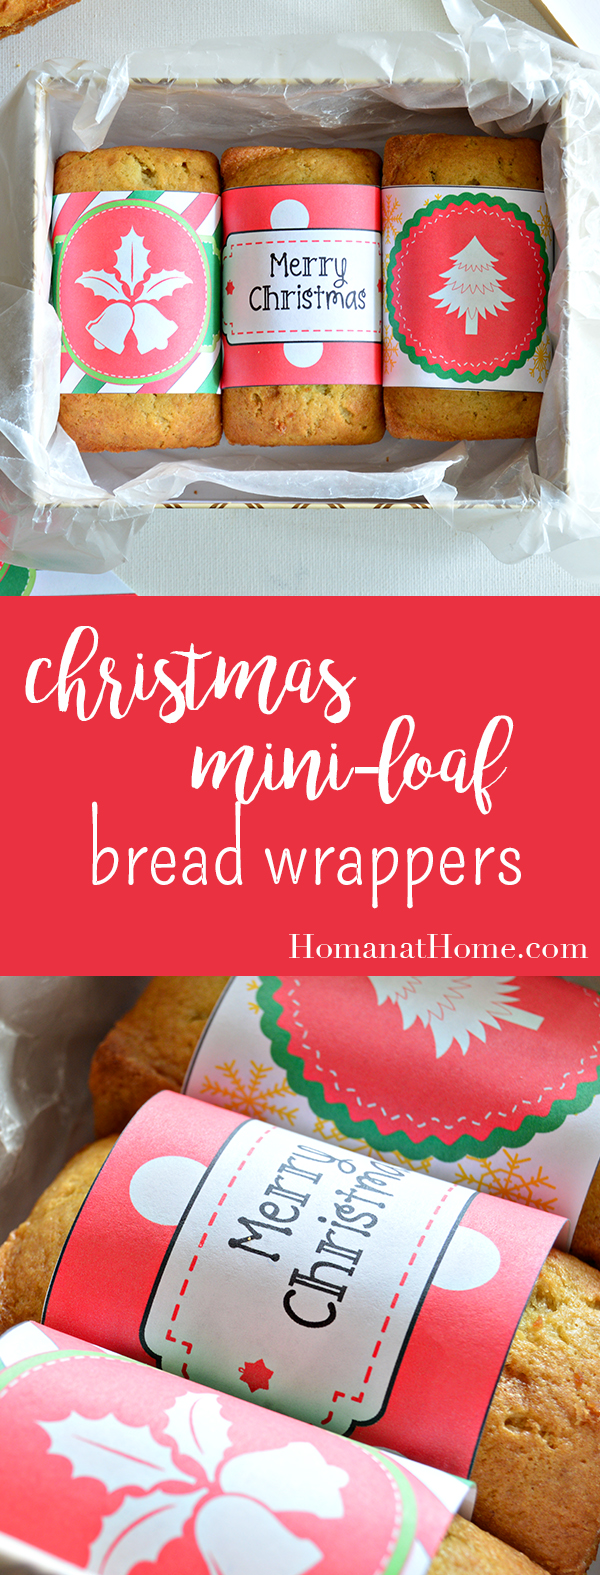 Christmas Mini-Loaf Bread Wrappers | Homan at Home